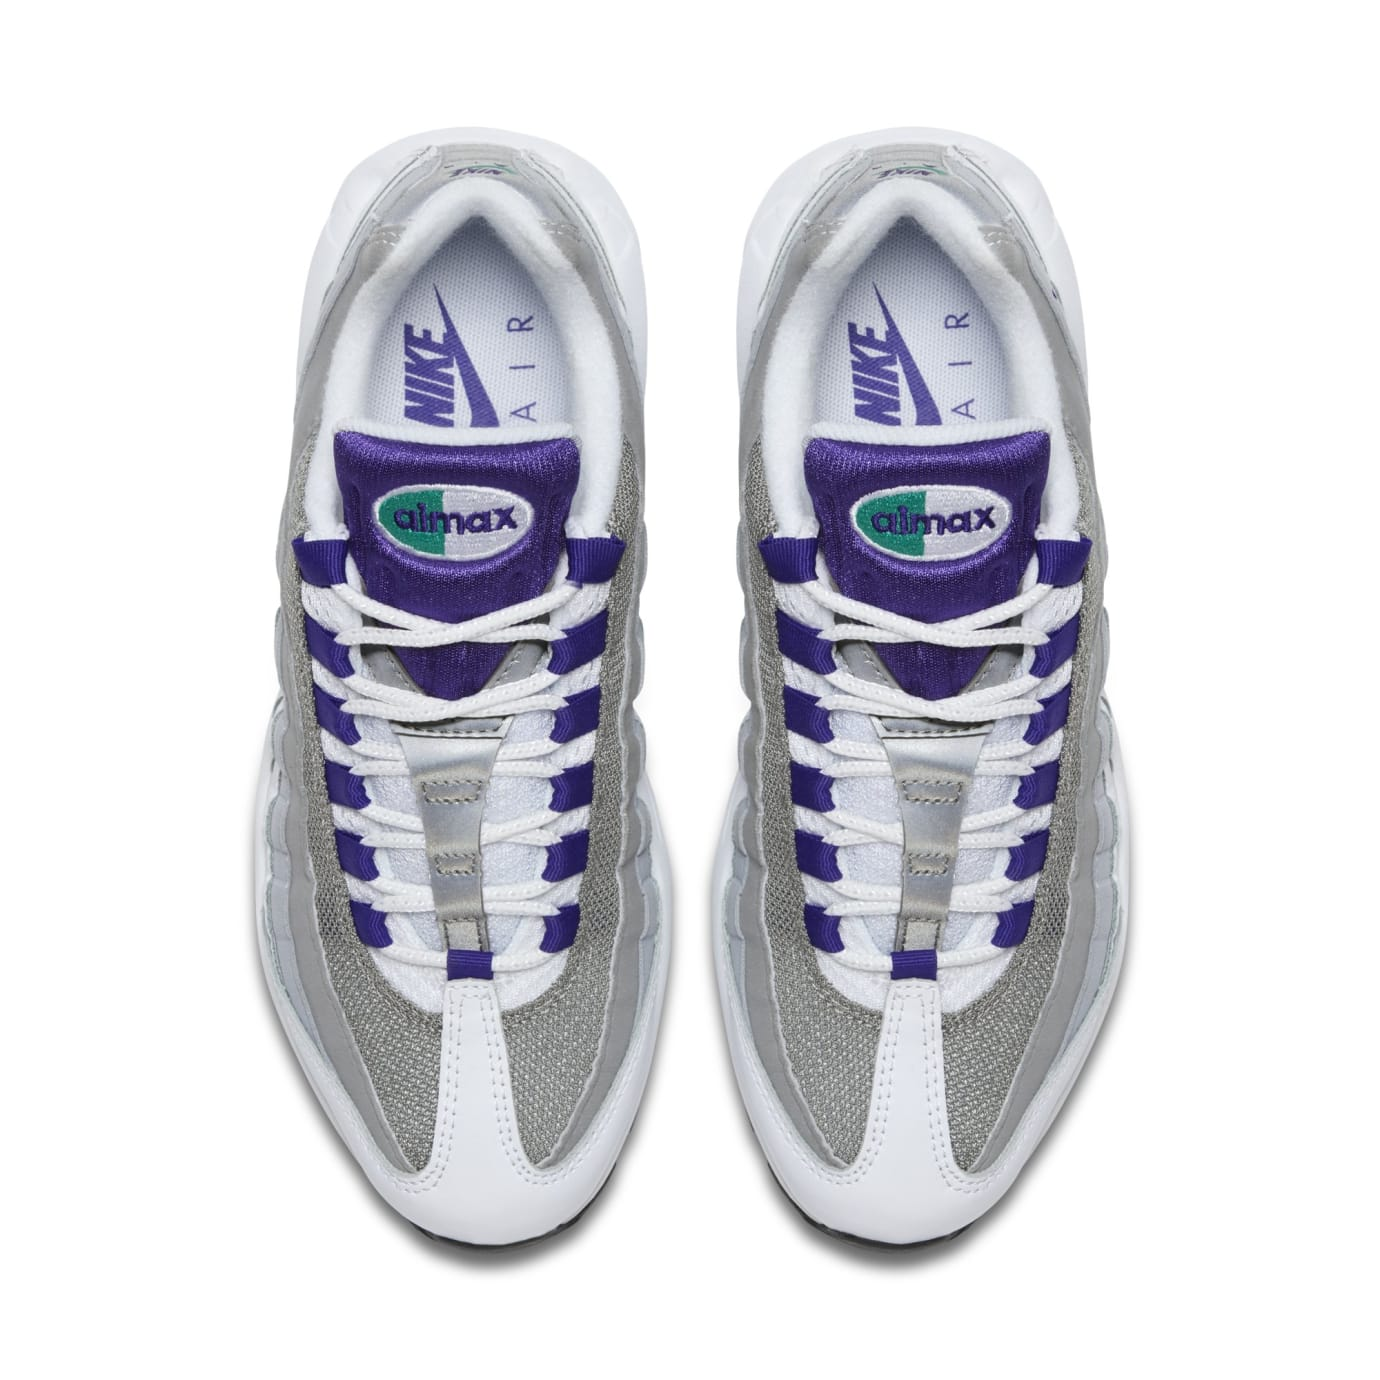 WMNS Nike Air Max 95 'Grape' 307960-109 (Top)